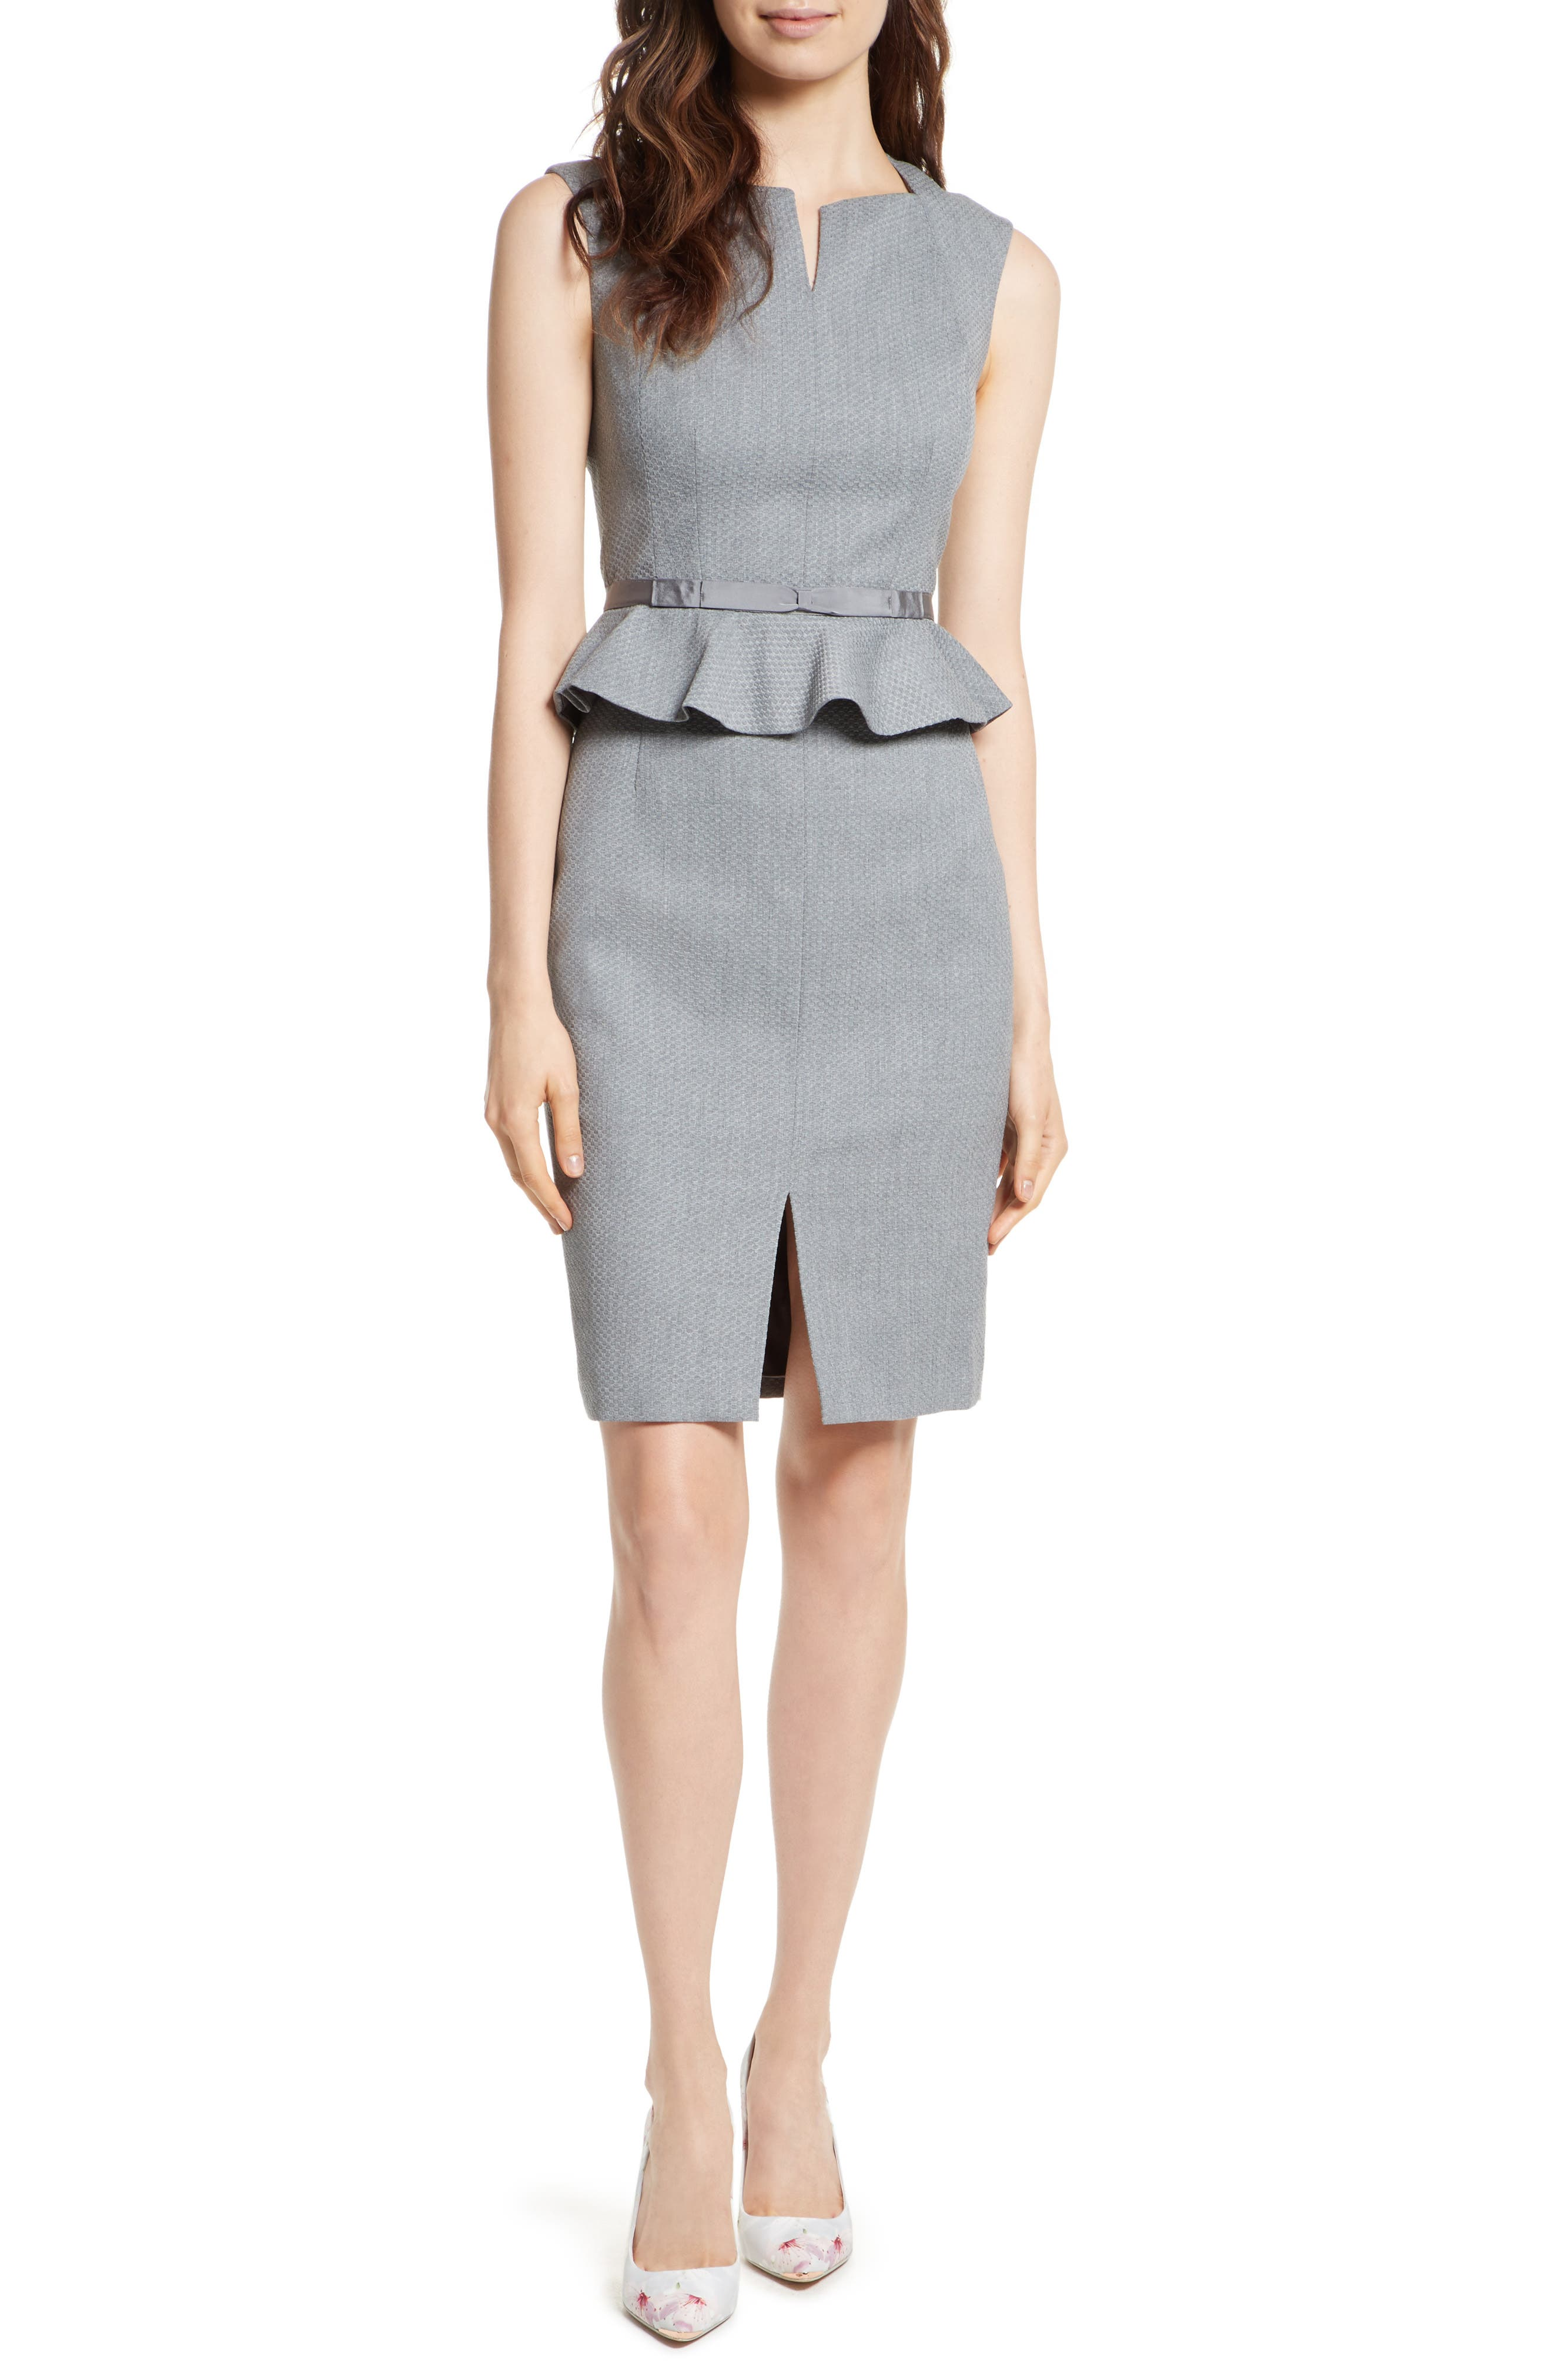 Alternate Image 1 Selected - Ted Baker London Nadaed Bow Detail Textured Peplum Dress